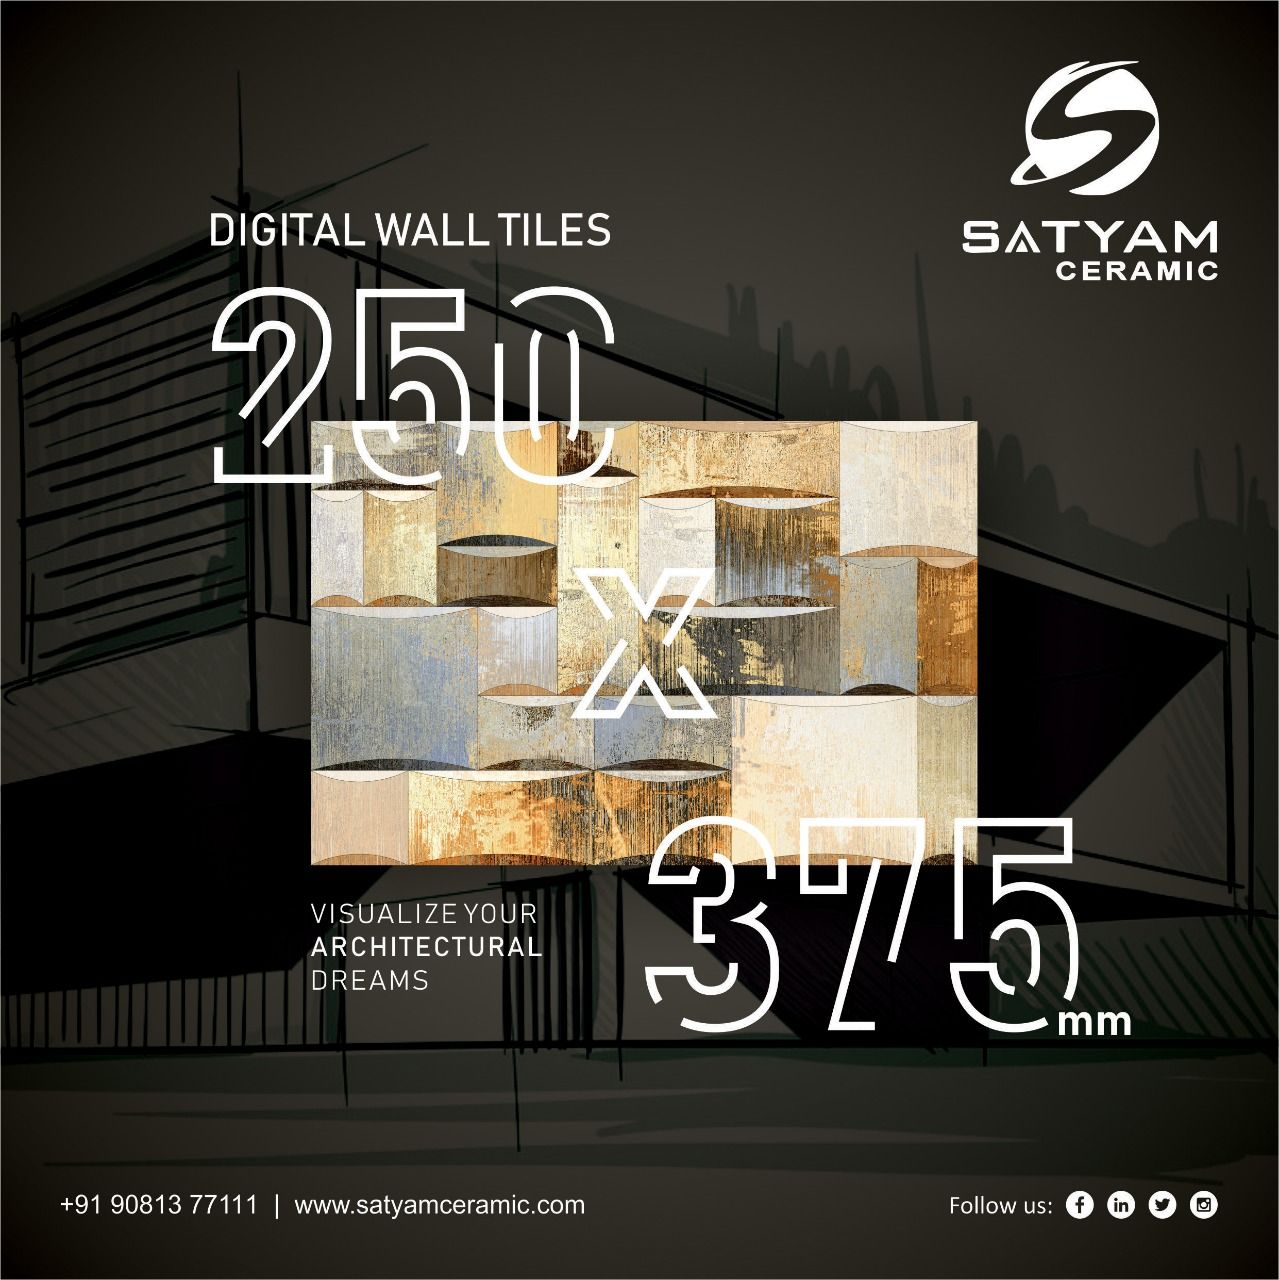 Visualize Your Architectural Dreams Satyam Ceramic Digital Wall Tiles 250x375 Mm Satyamceramic Satyamtiles Digitalwalltil Digital Wall Wall Tiles Visual